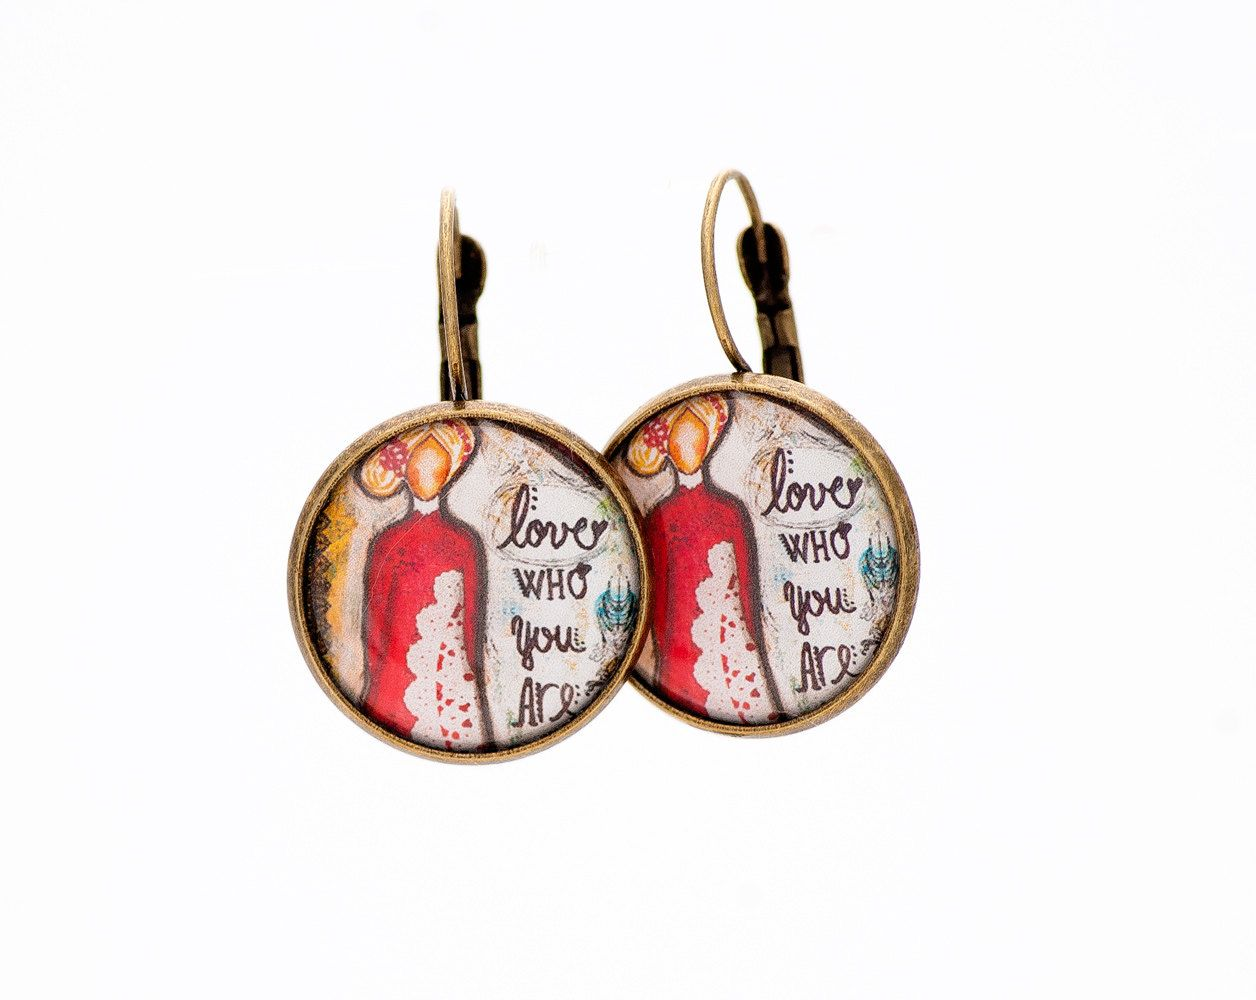 Inspirational Earrings Motivational Gift Self Love Care Positive Affirmation Gifts